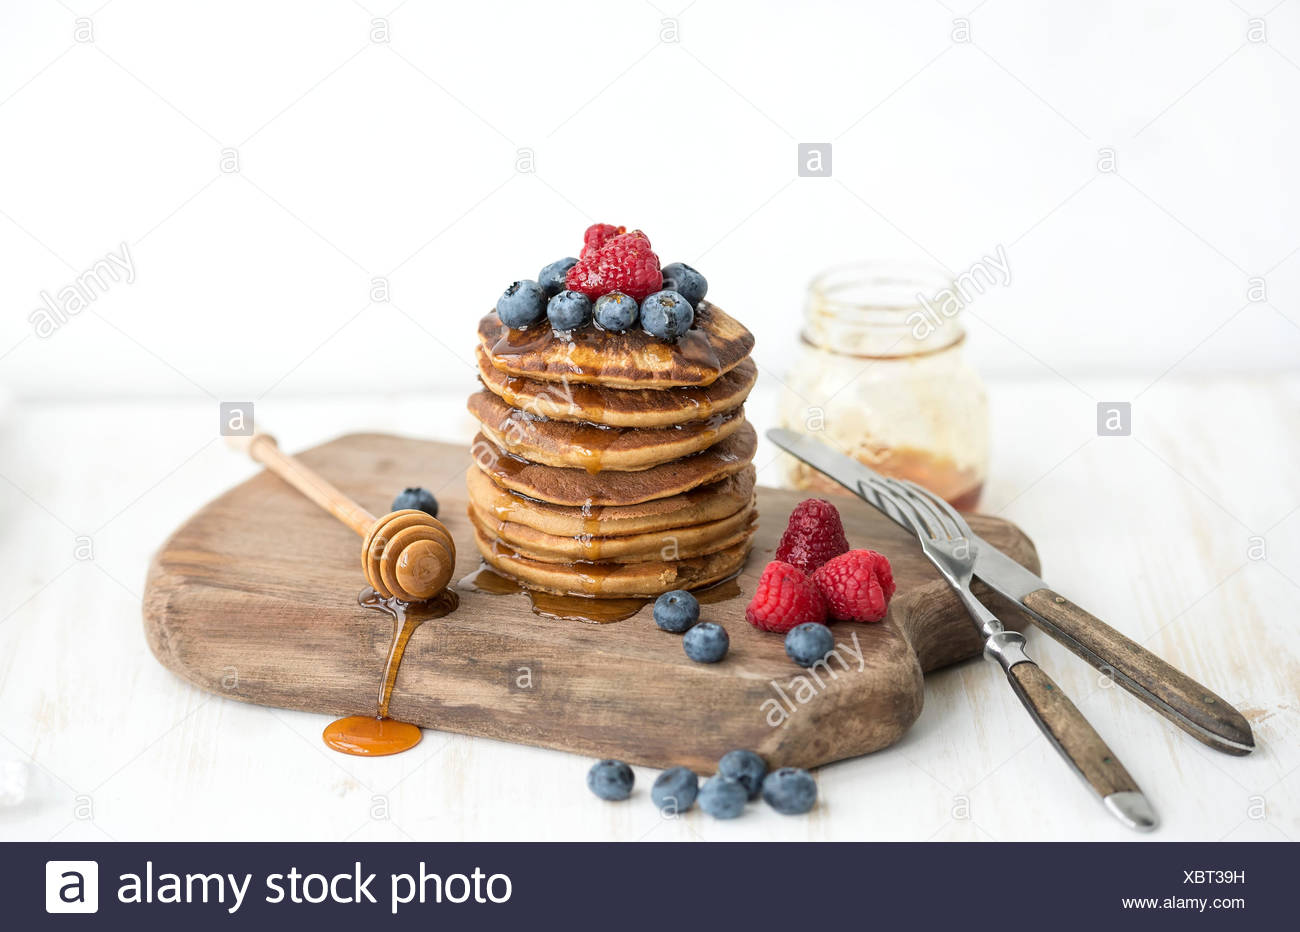 Homemade pancakes with fresh garden berries, honey on wooden board over white painted wooden background, selective focus, horizo - Stock Image